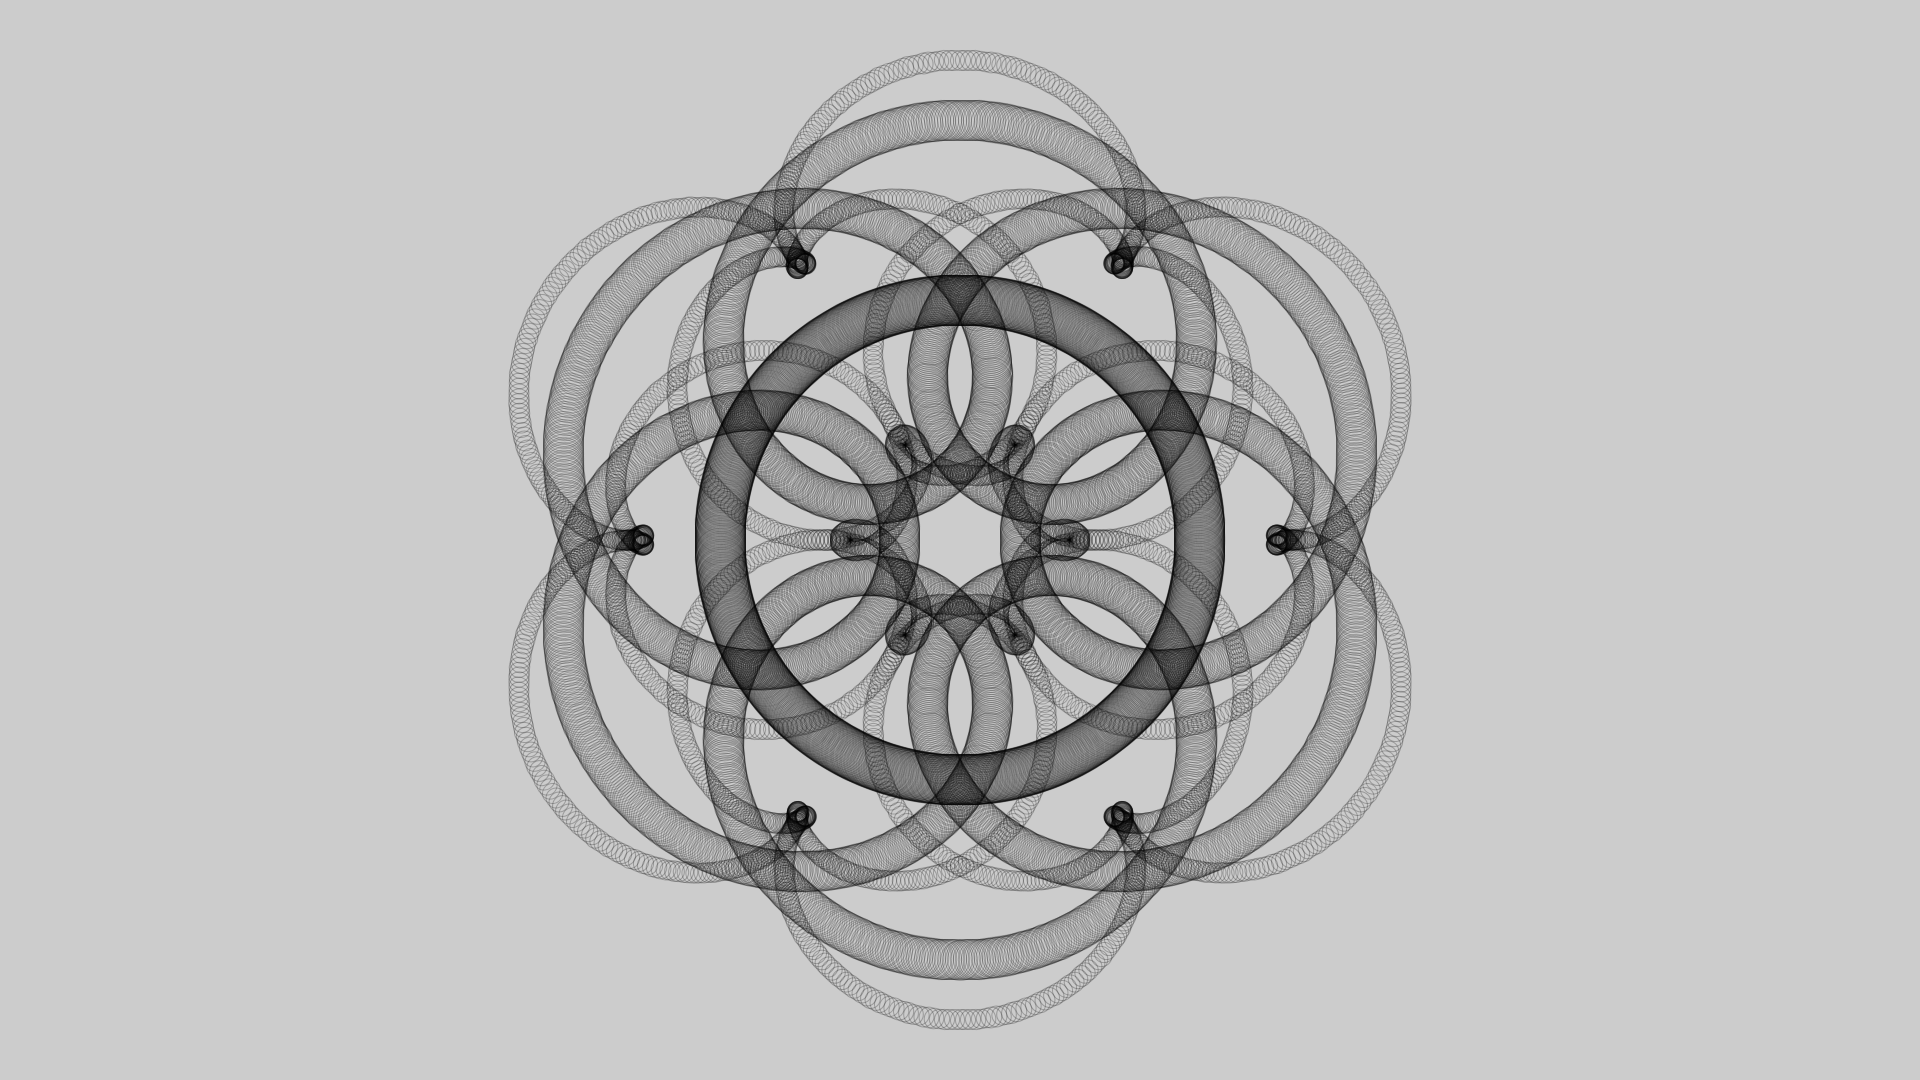 orrery-2015-3-23-12-9-523600-600-200.png